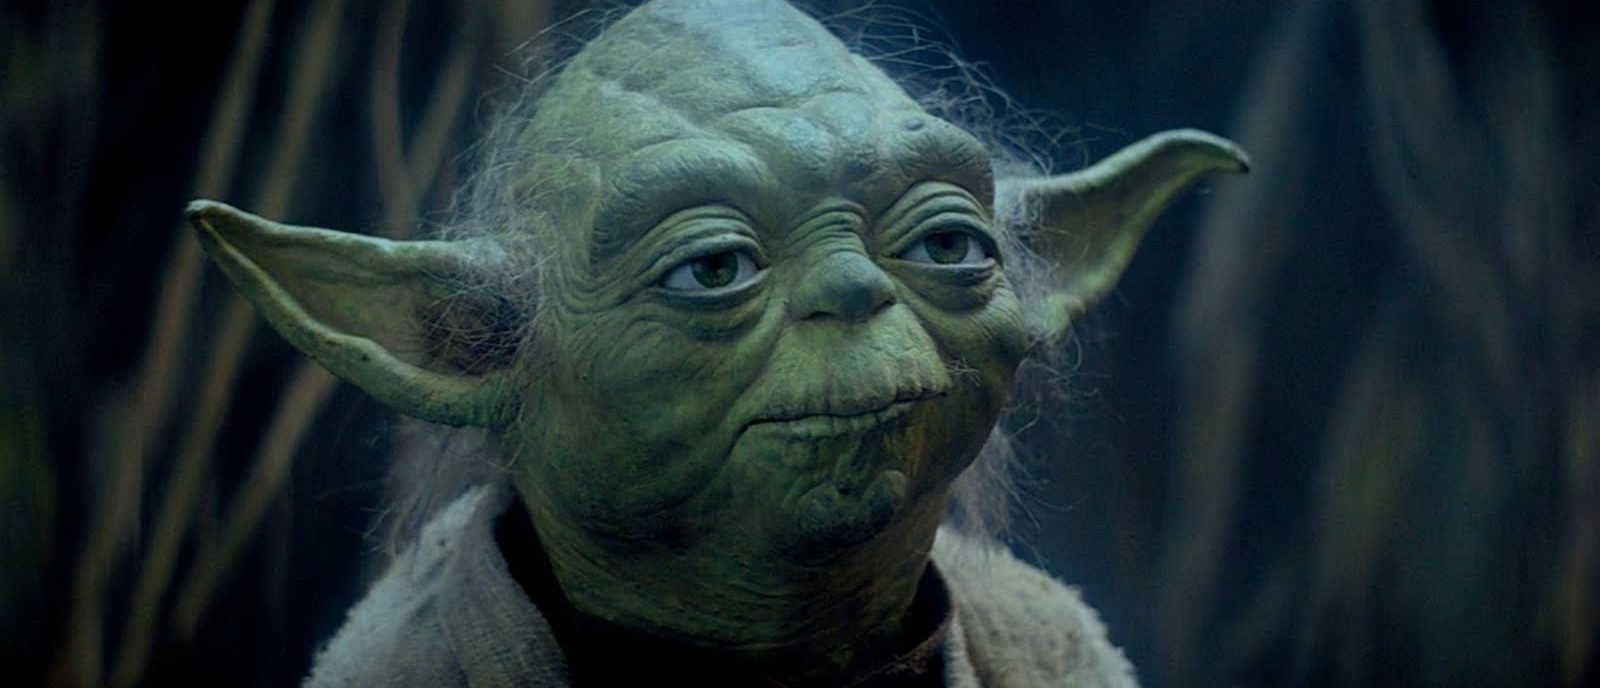 Yoda Frank Oz Star Wars: The Last Jedi